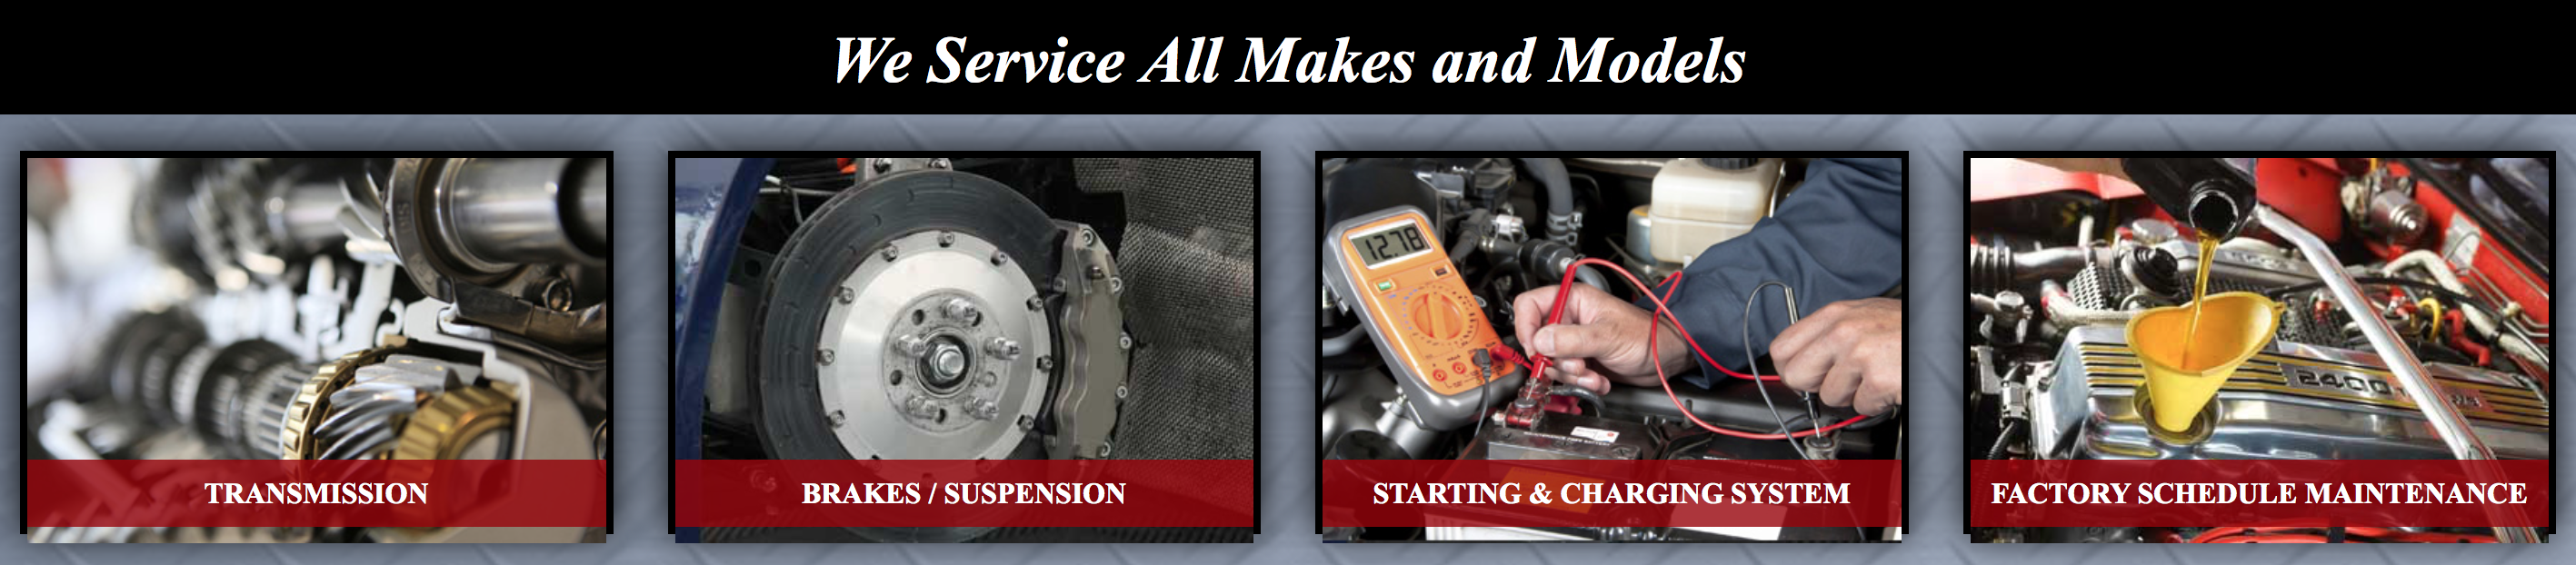 Auto Repair Lakewood - Oil Change, Brakes, Transmission